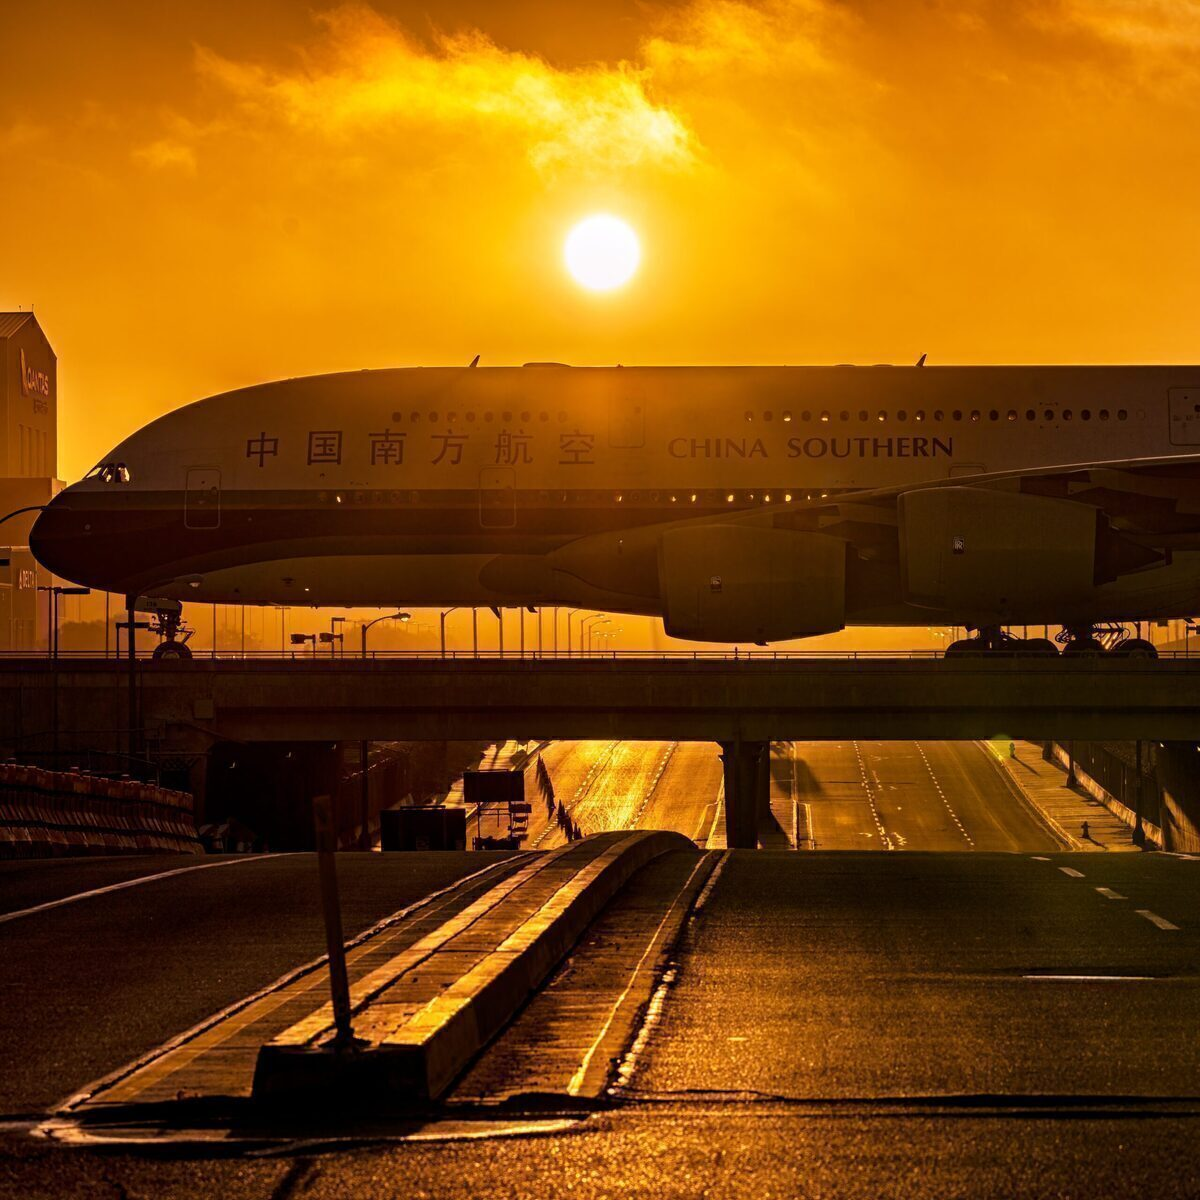 China southern A380 crosses a bridge in front of the setting sun